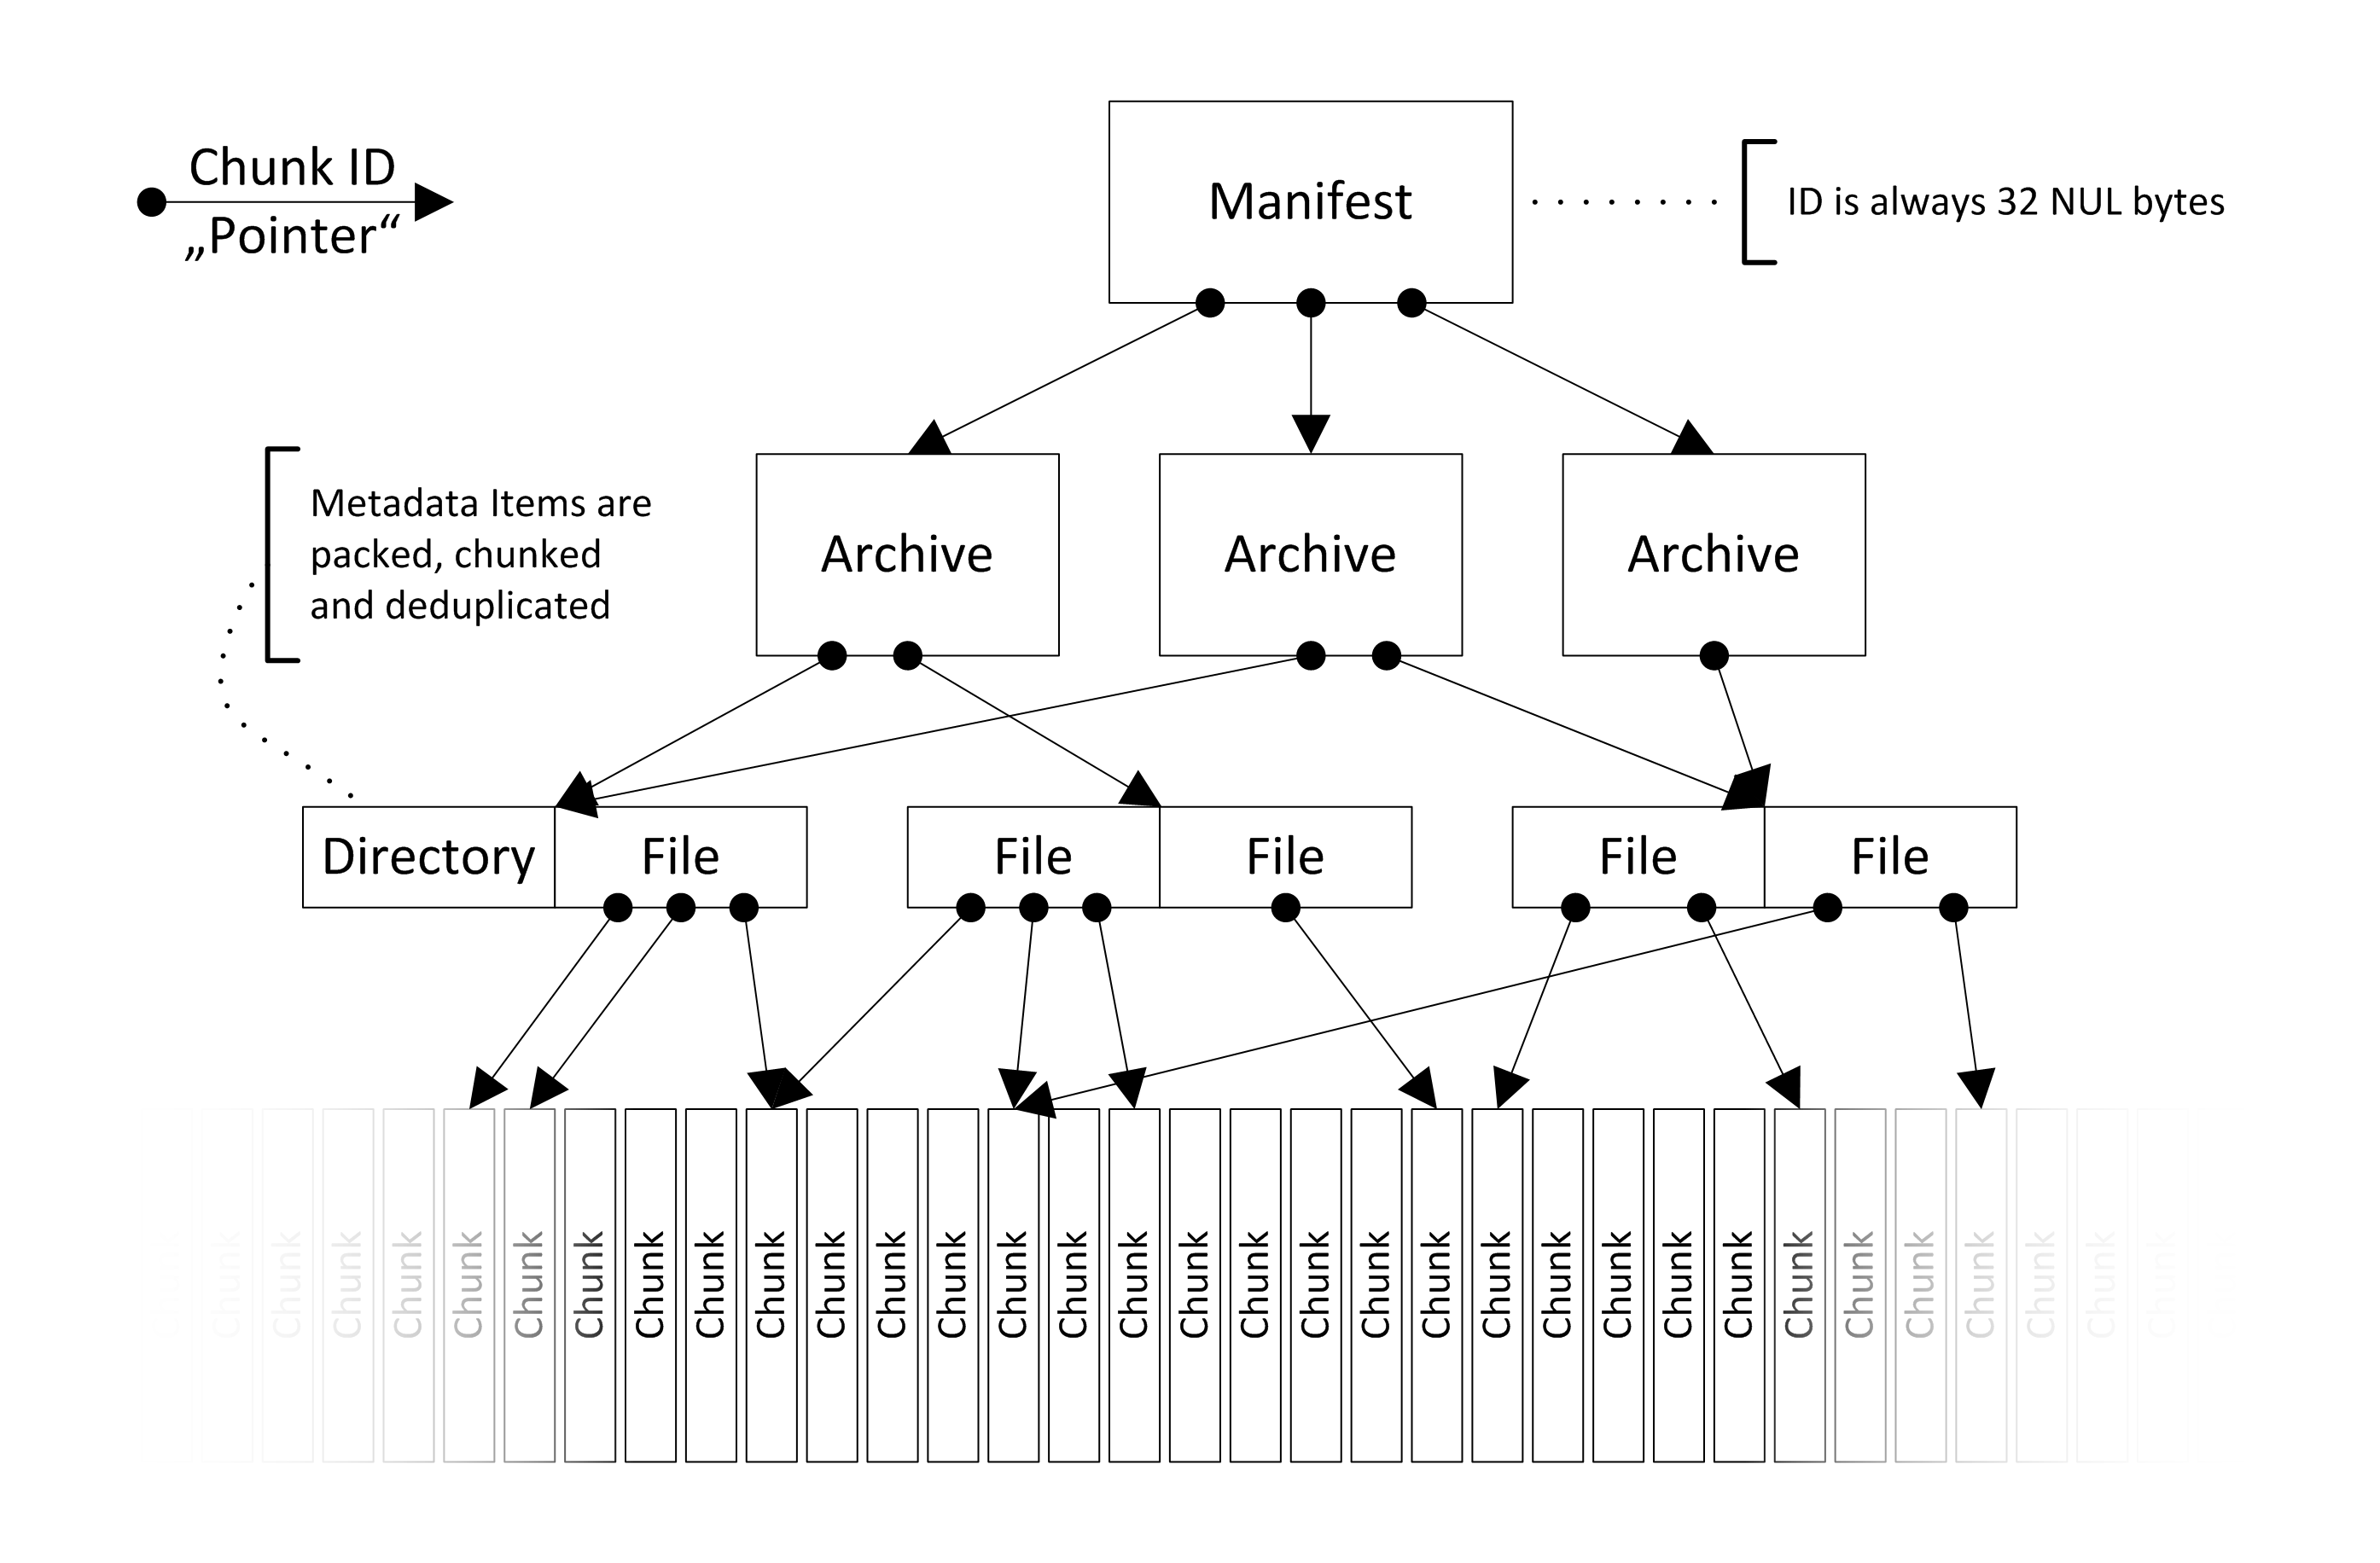 Data structures and file formats — Borg - Deduplicating Archiver 1 1